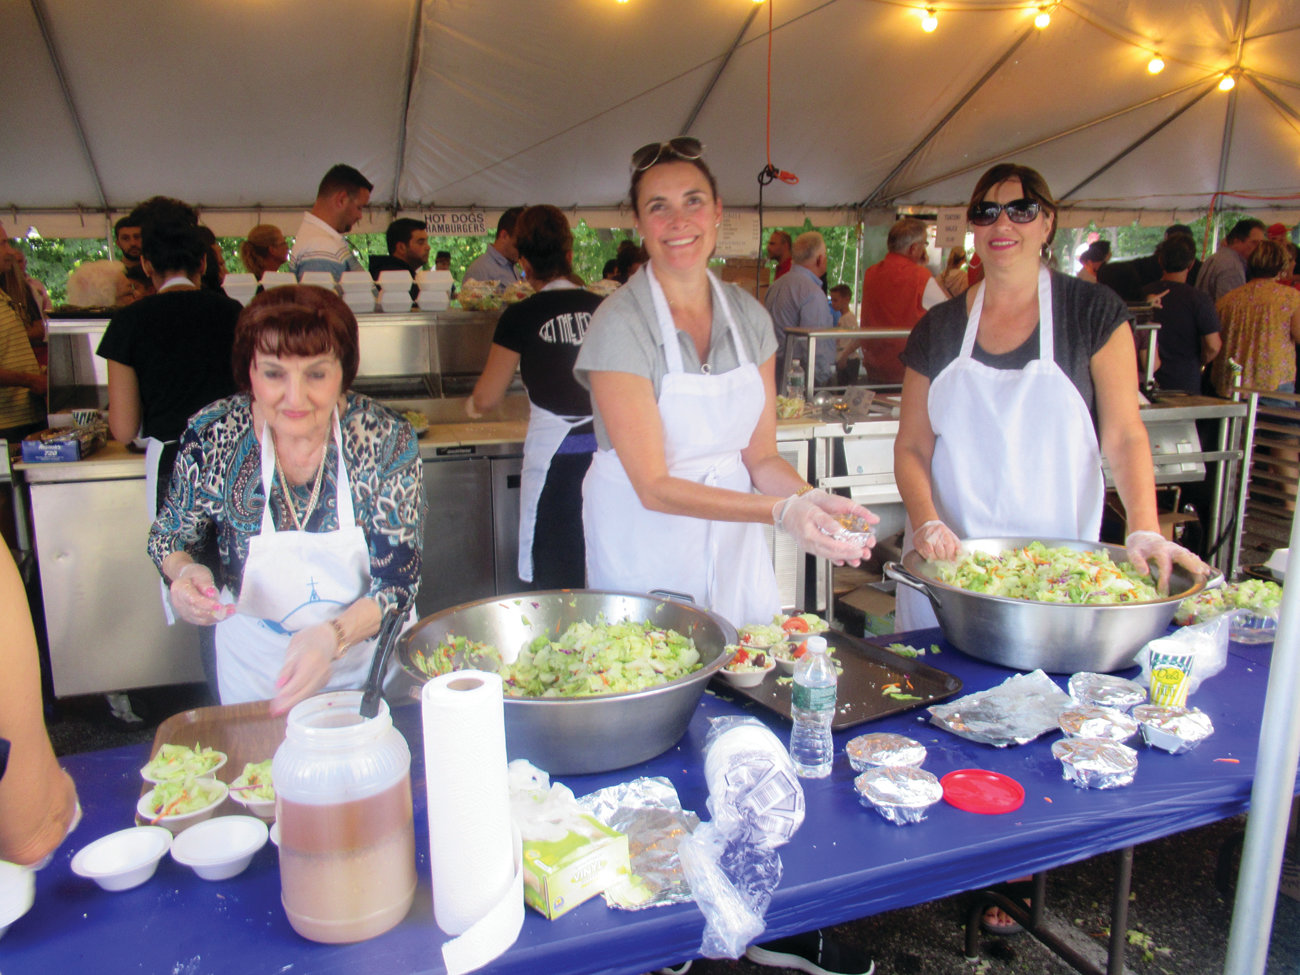 SPECIAL SALADS: Ladies like Angela Provost, Paula Demetrakas and Maria Menard mix another batch of Greek salads for attendees at the Cranston Greek Festival.